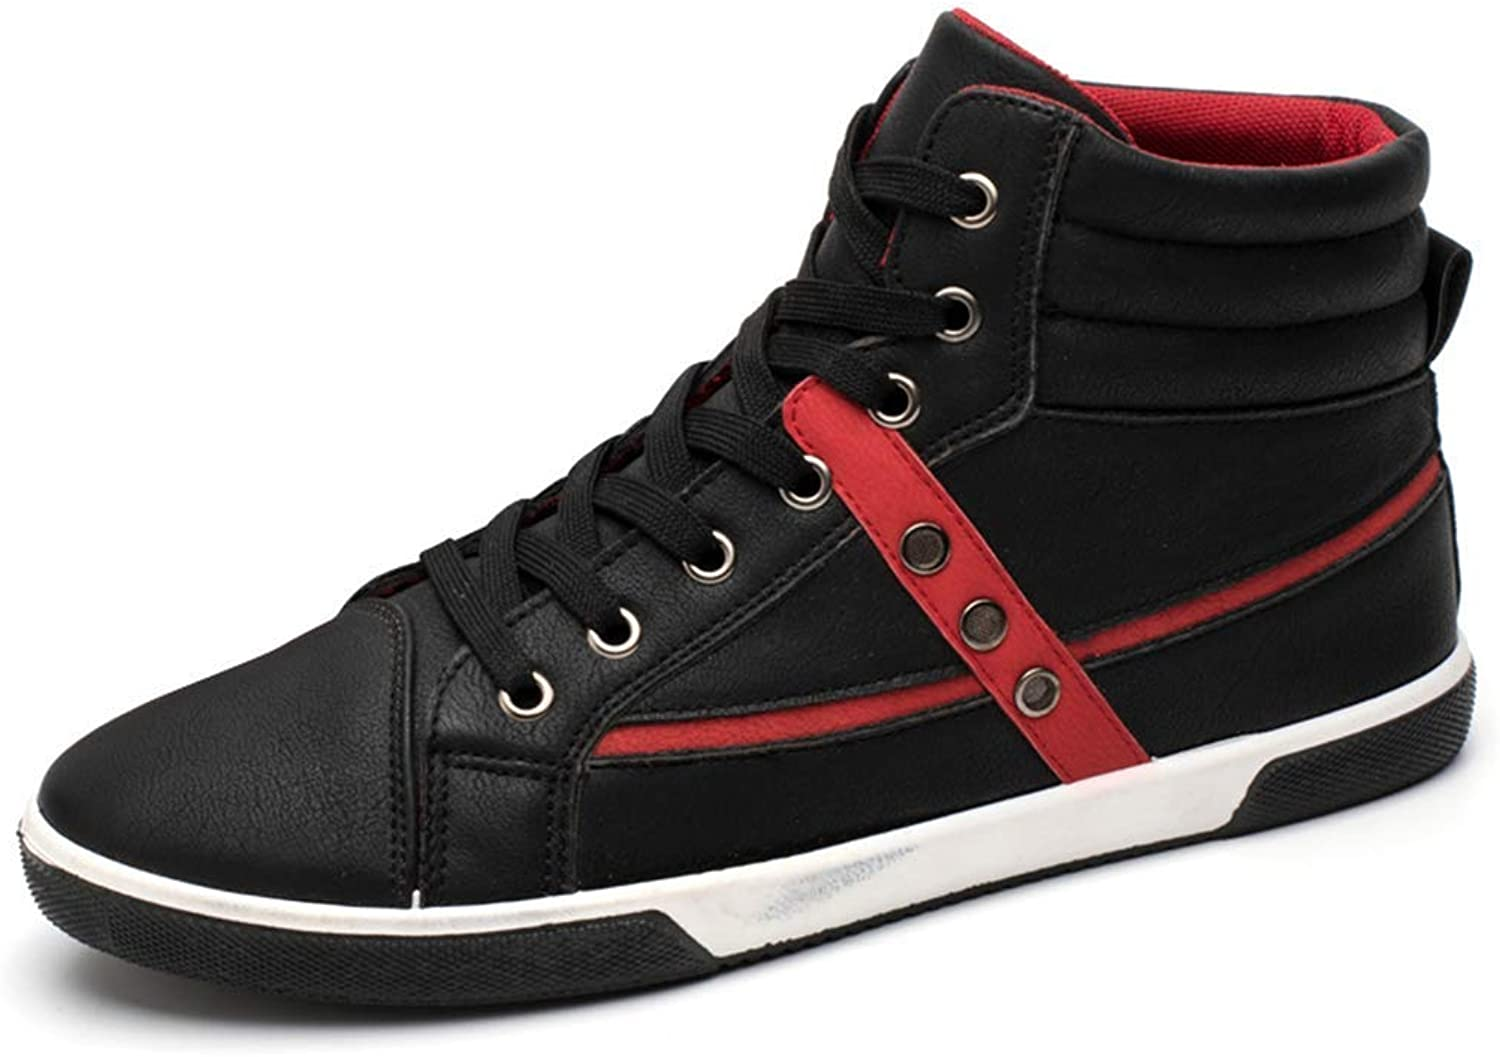 ZHRUI Mens Fashion Casual shoes Male Breathable Sneakers Classic PU Leather shoes (color   Black, Size   8=42 EU)